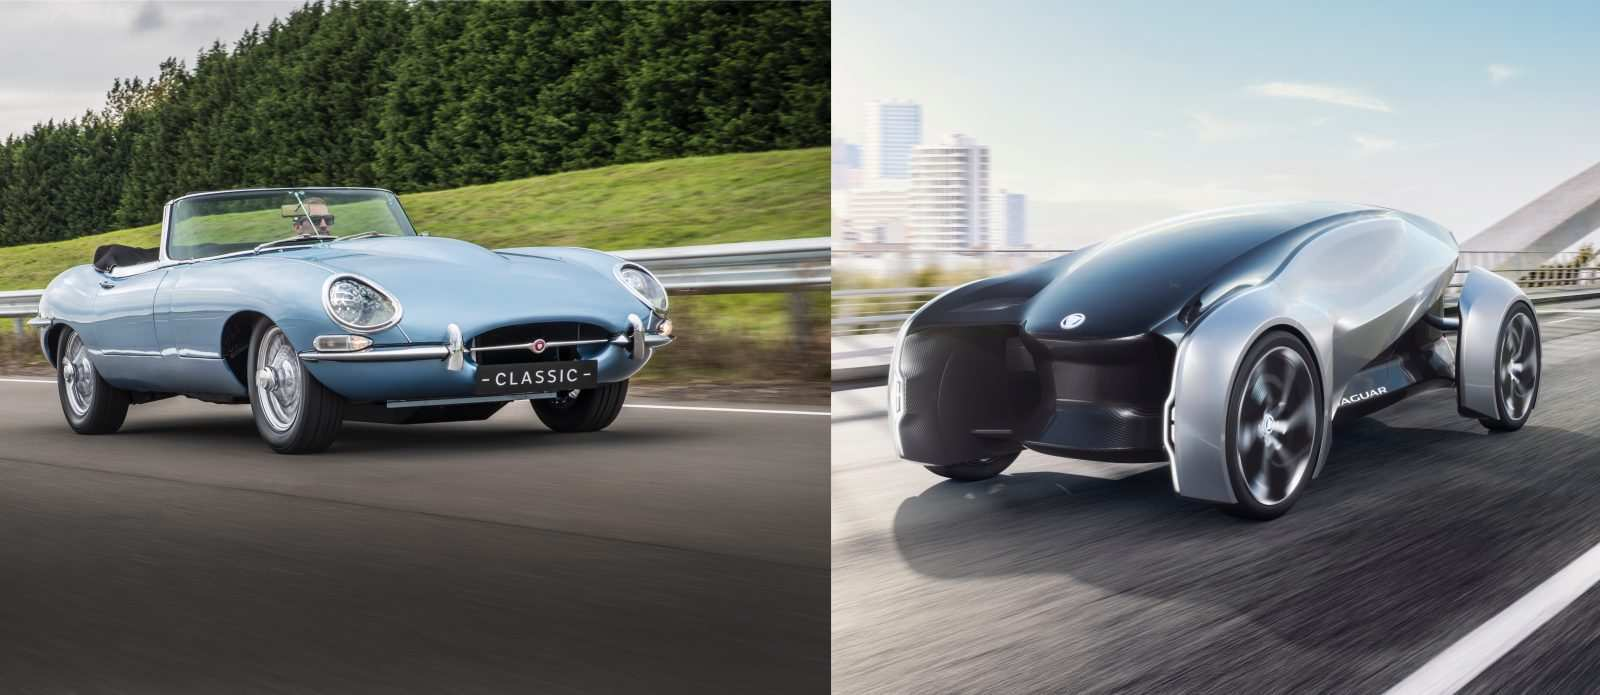 18 All New Jaguar Electric Cars 2020 Redesign And Concept